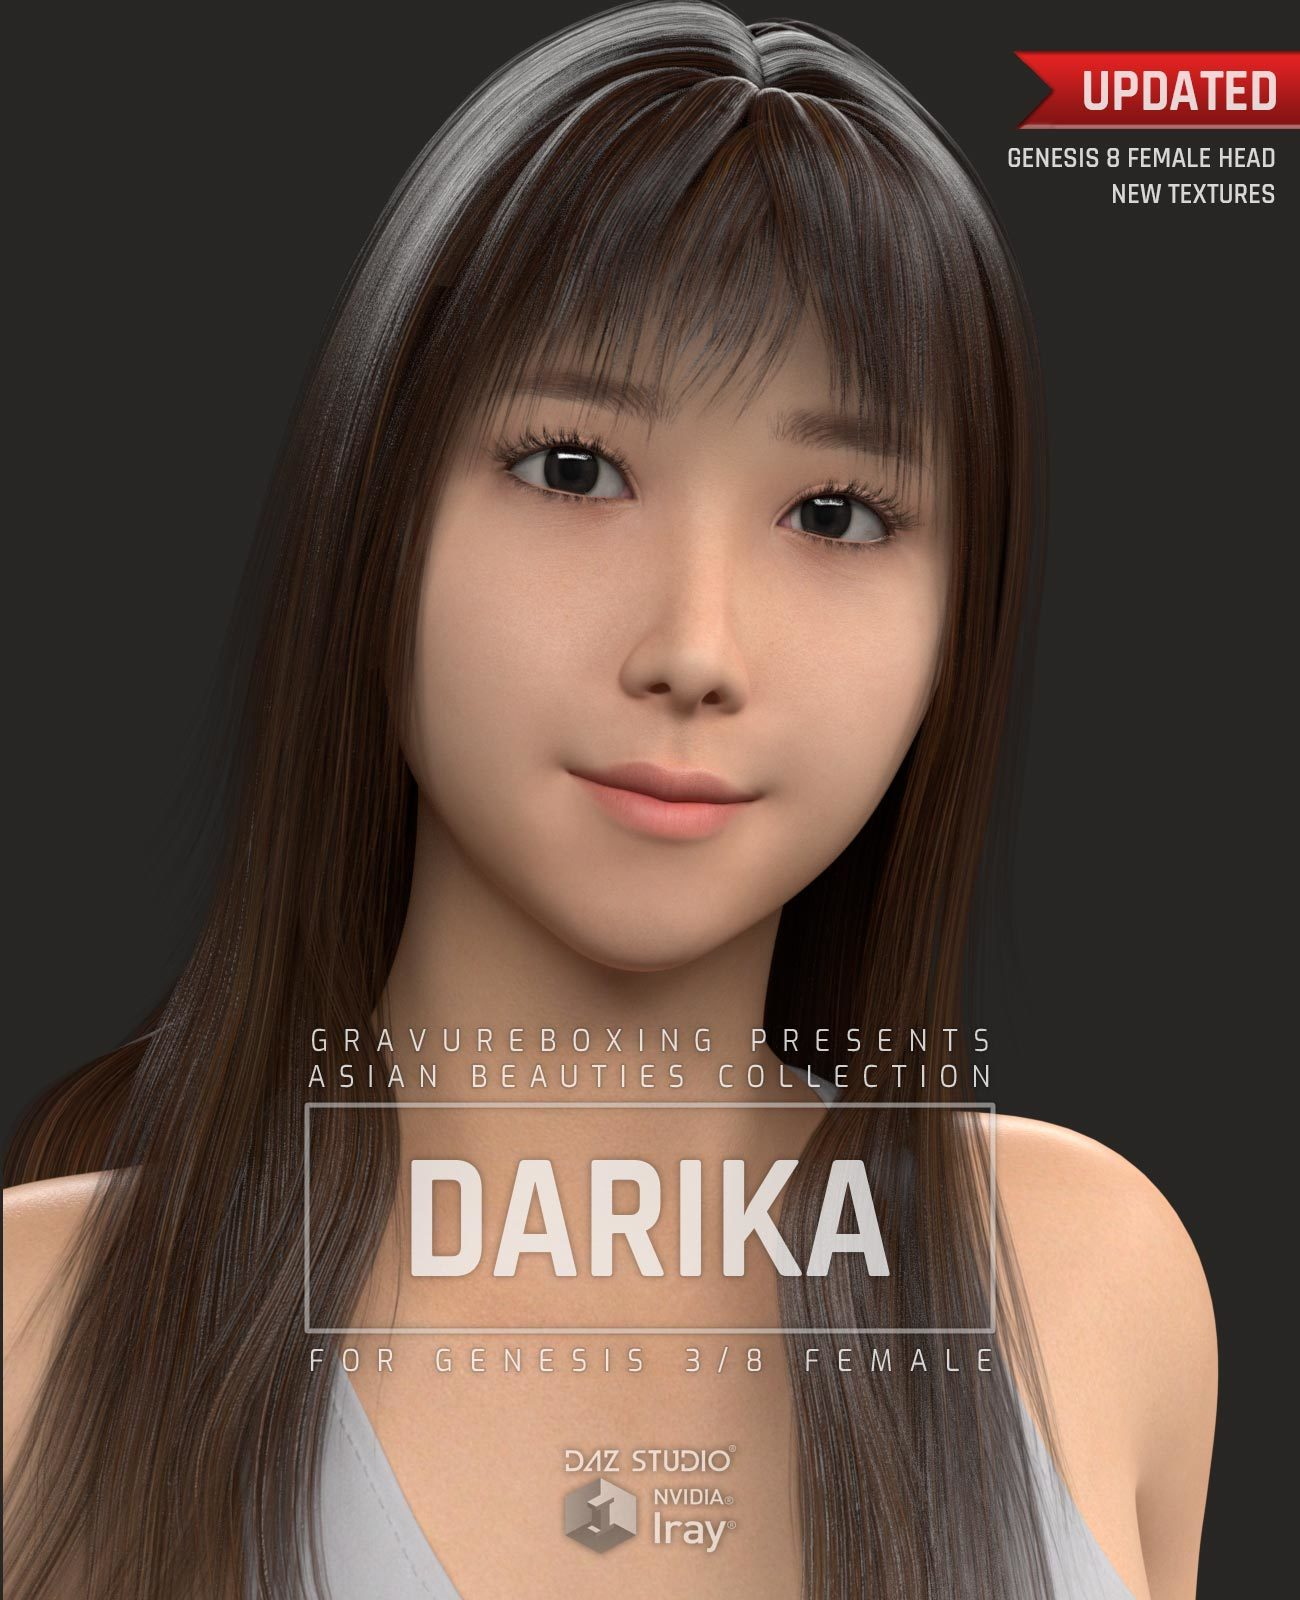 Darika G3F for Genesis 3 Female